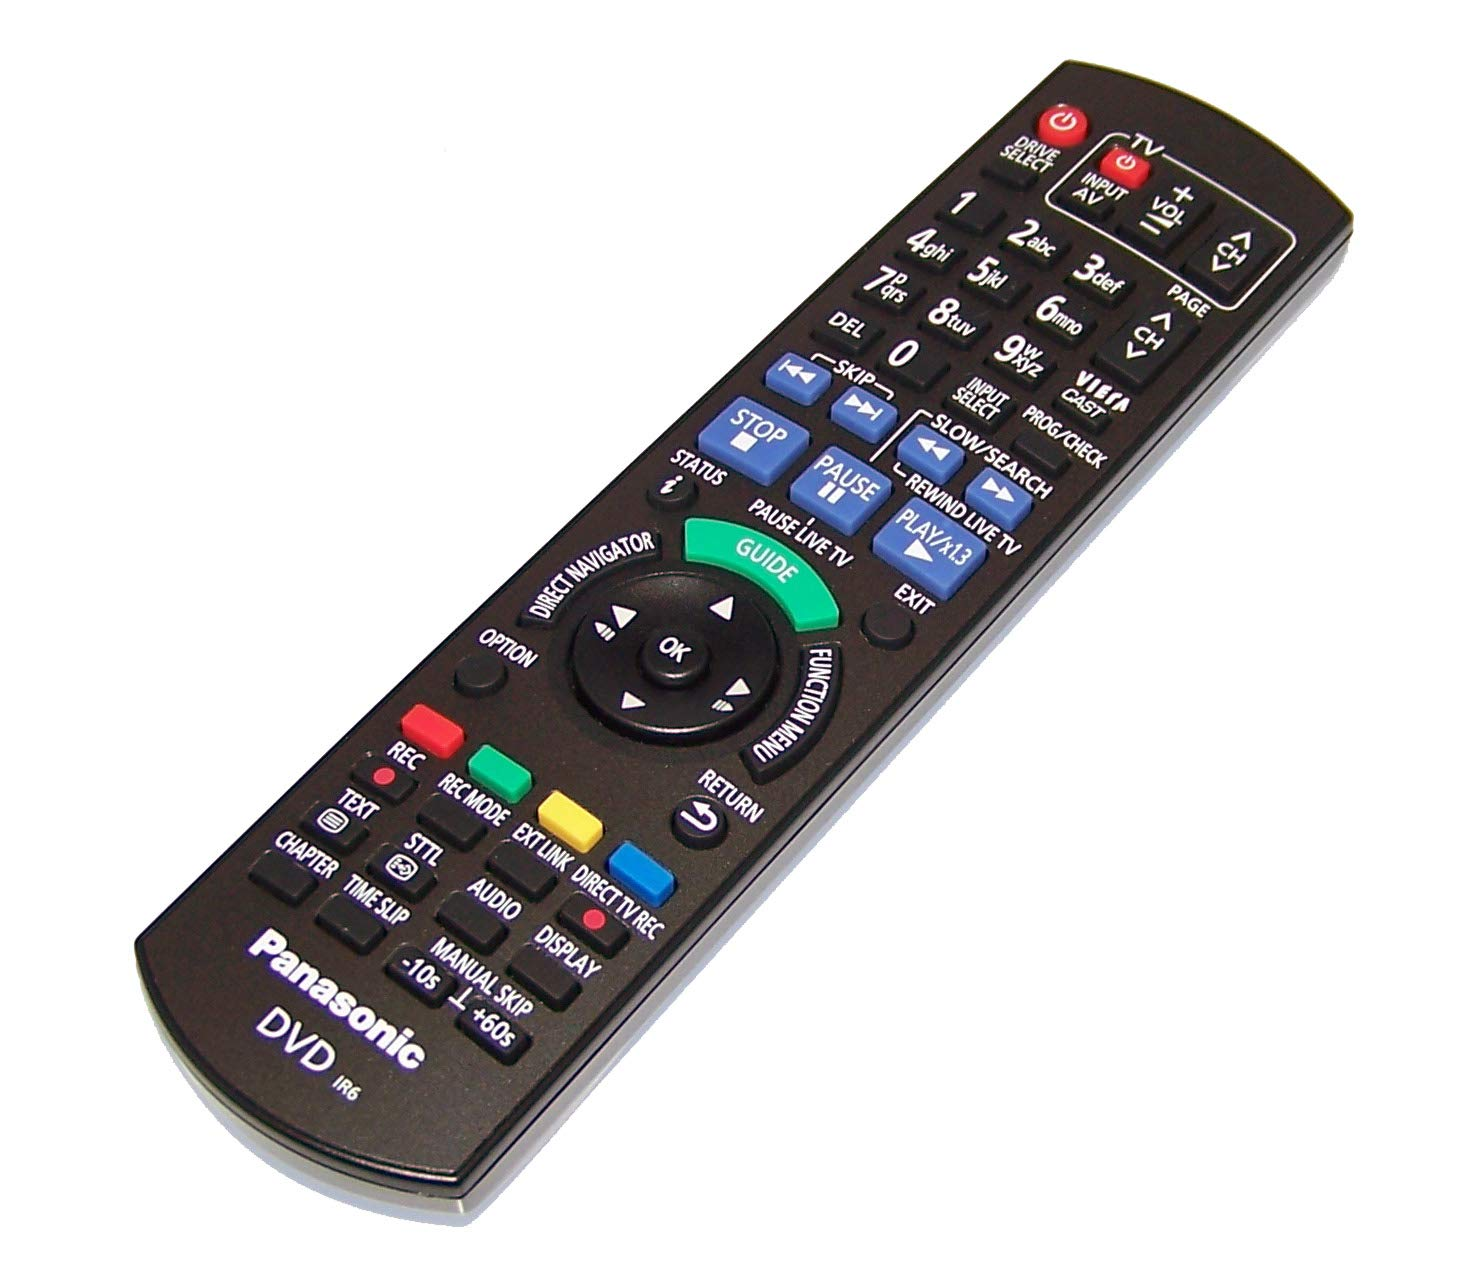 OEM Panasonic Remote Control Shipped with DMRXW390, DMR-XW390, DMRXW390GL, DMR-XW390GL by Panasonic